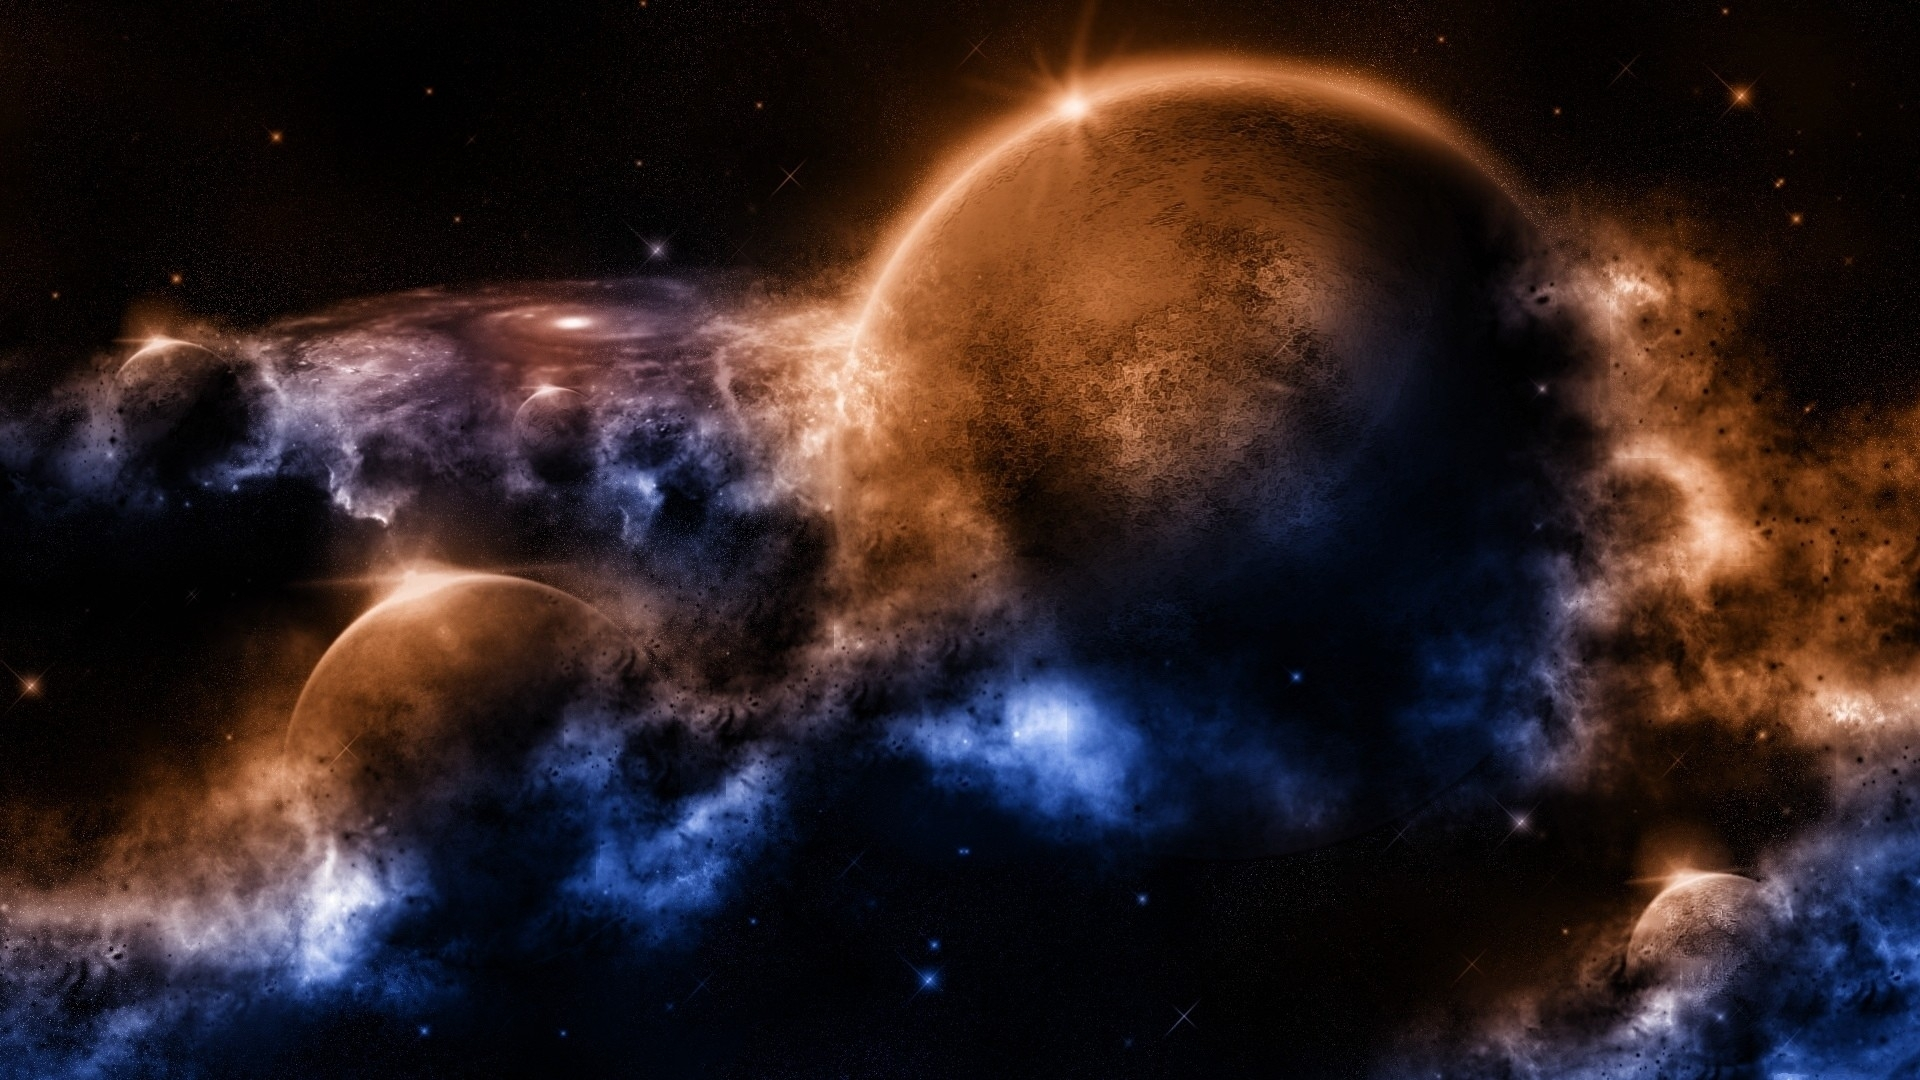 Sci fi space planets nebula stars art cg wallpaper ...